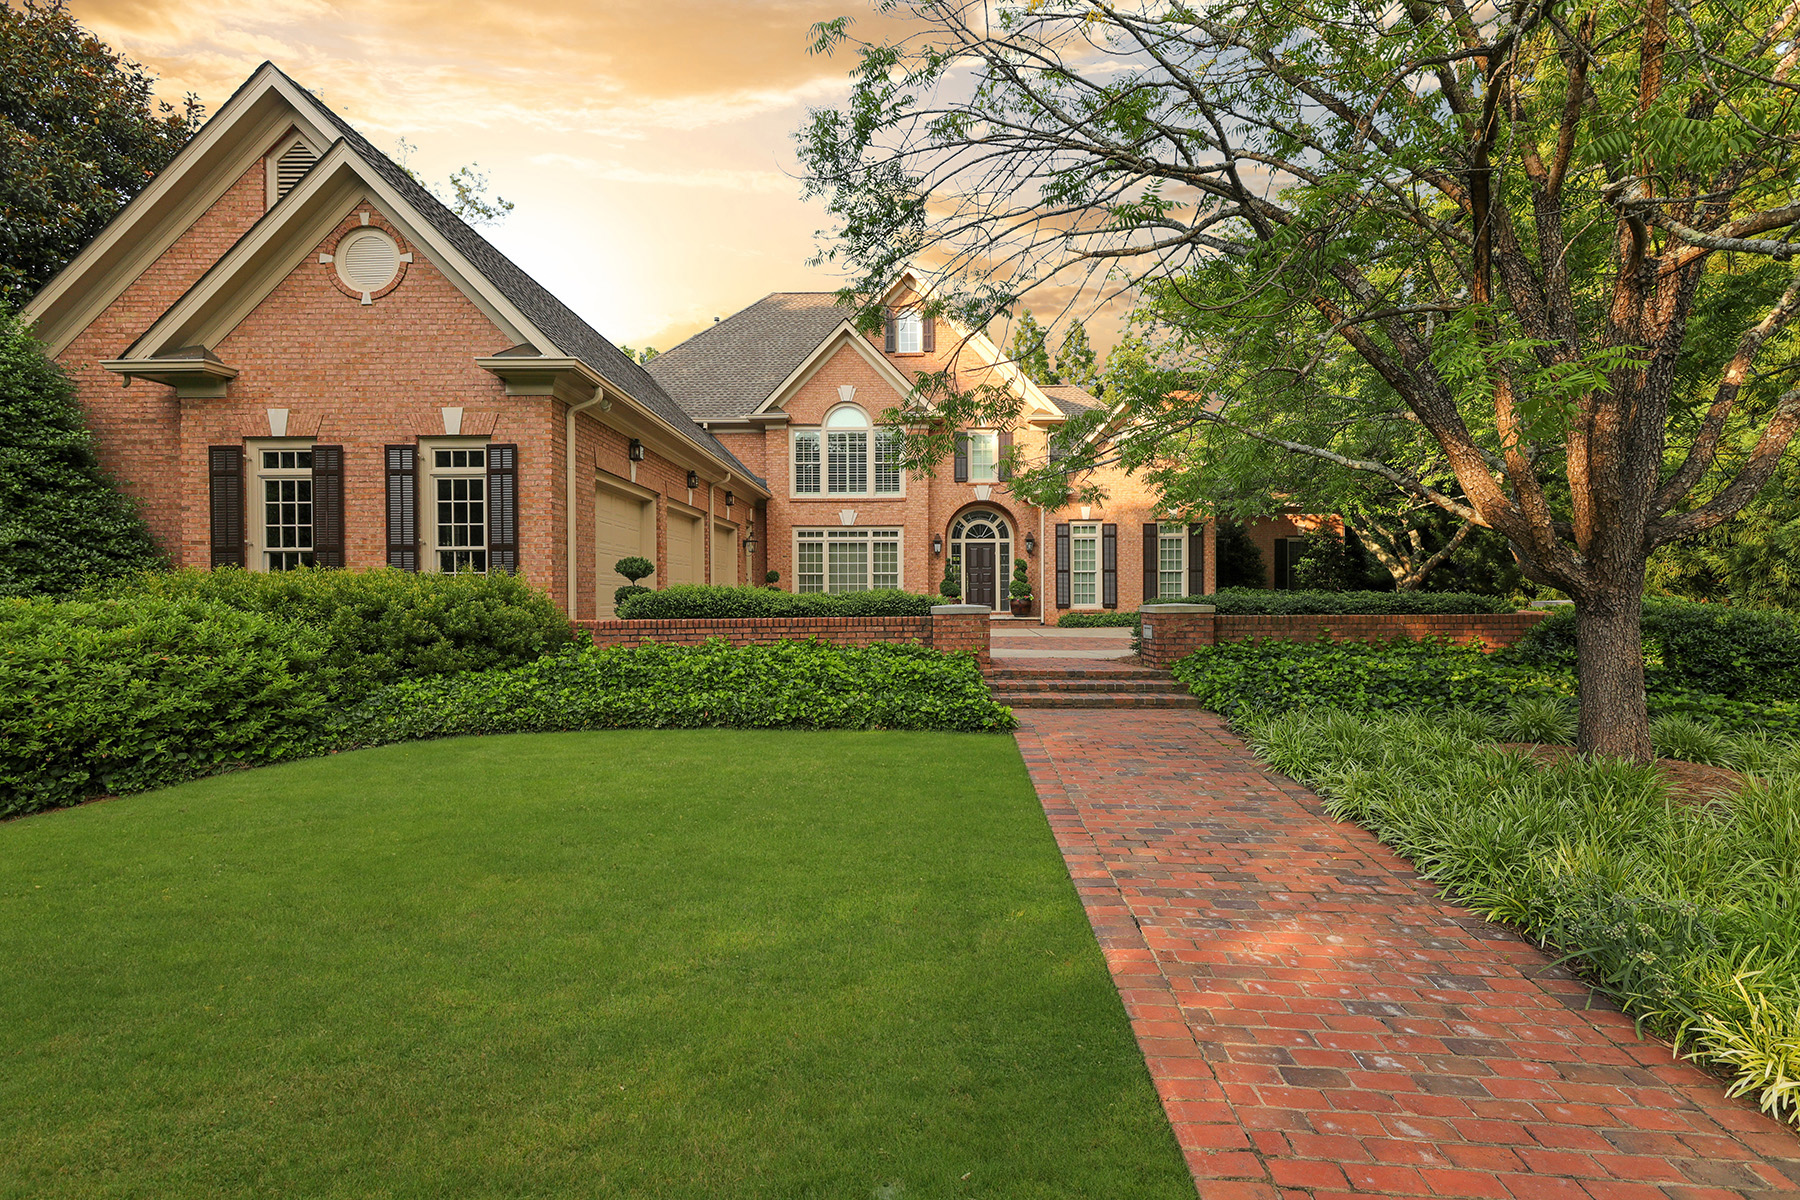 Single Family Homes for Sale at Elegant Country Club of the South Custom Home 3930 Merriweather Woods Johns Creek, Georgia 30022 United States